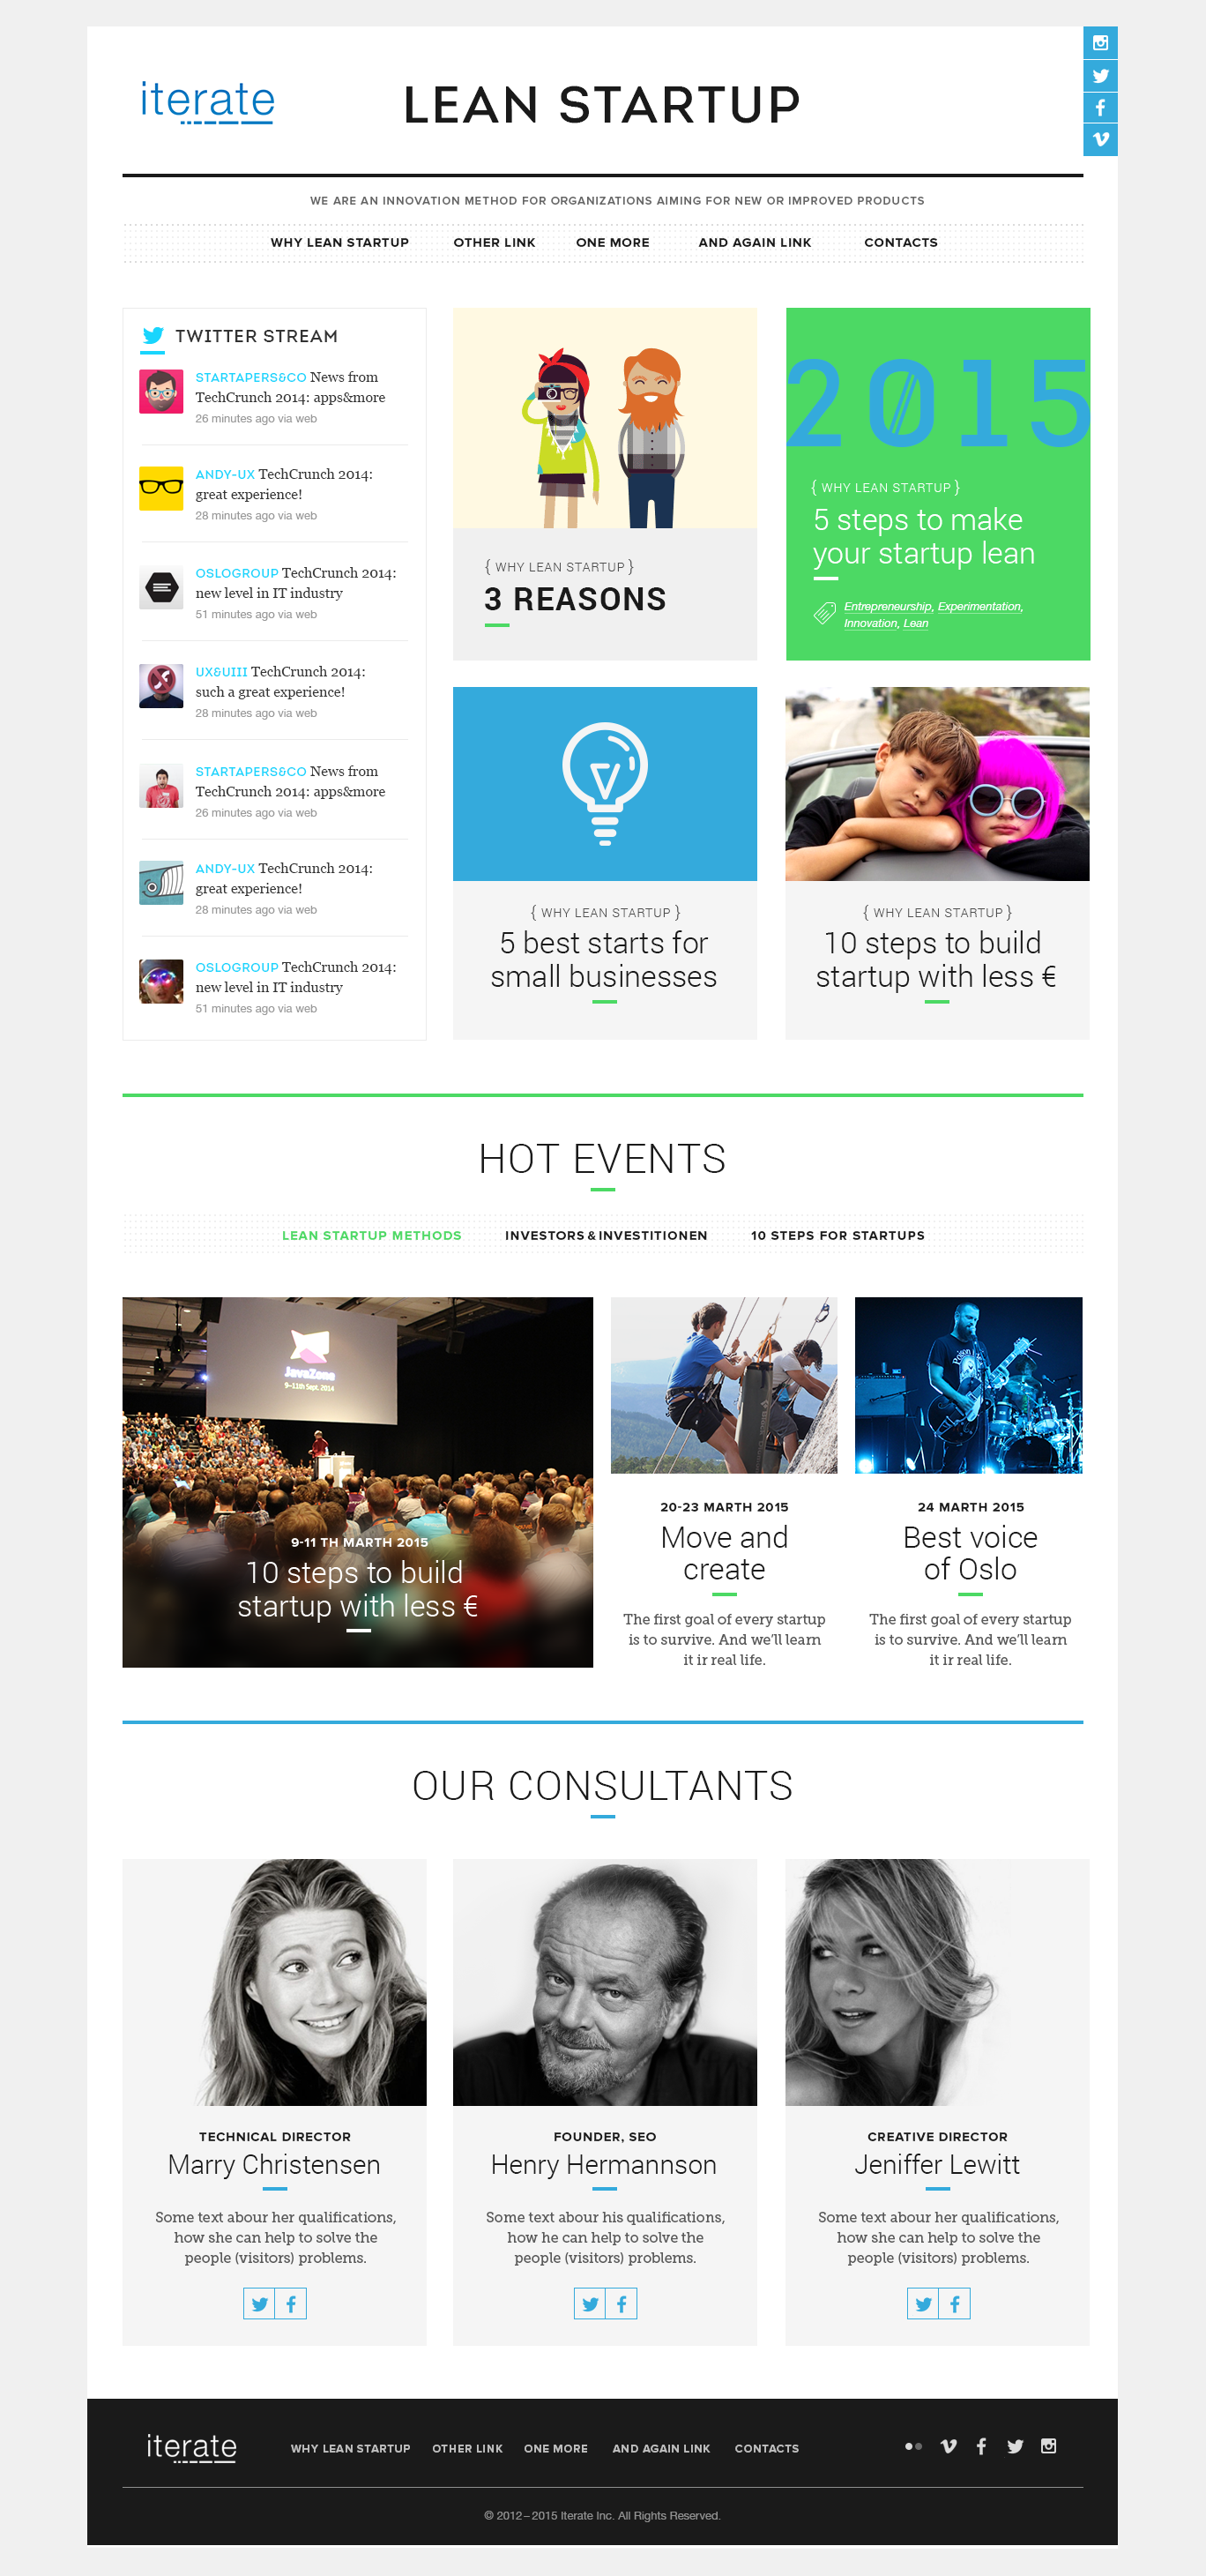 Design Iterate's new Lean Startup home page, all magazine style.